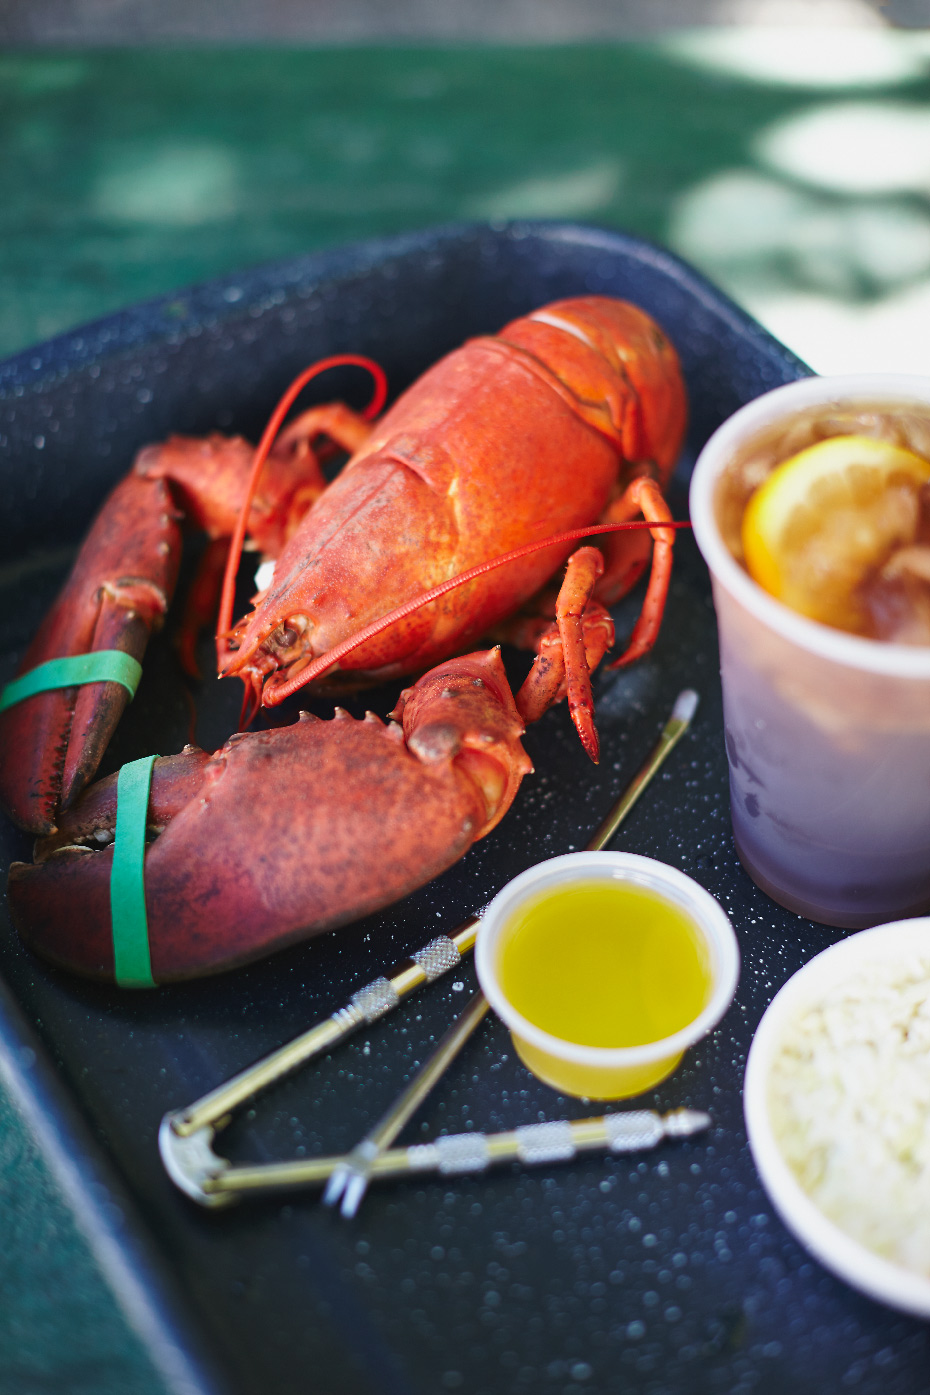 Stacey Van Berkel Photography I Rustic lobster al fresco with butter, coleslaw & ice tea I Maine